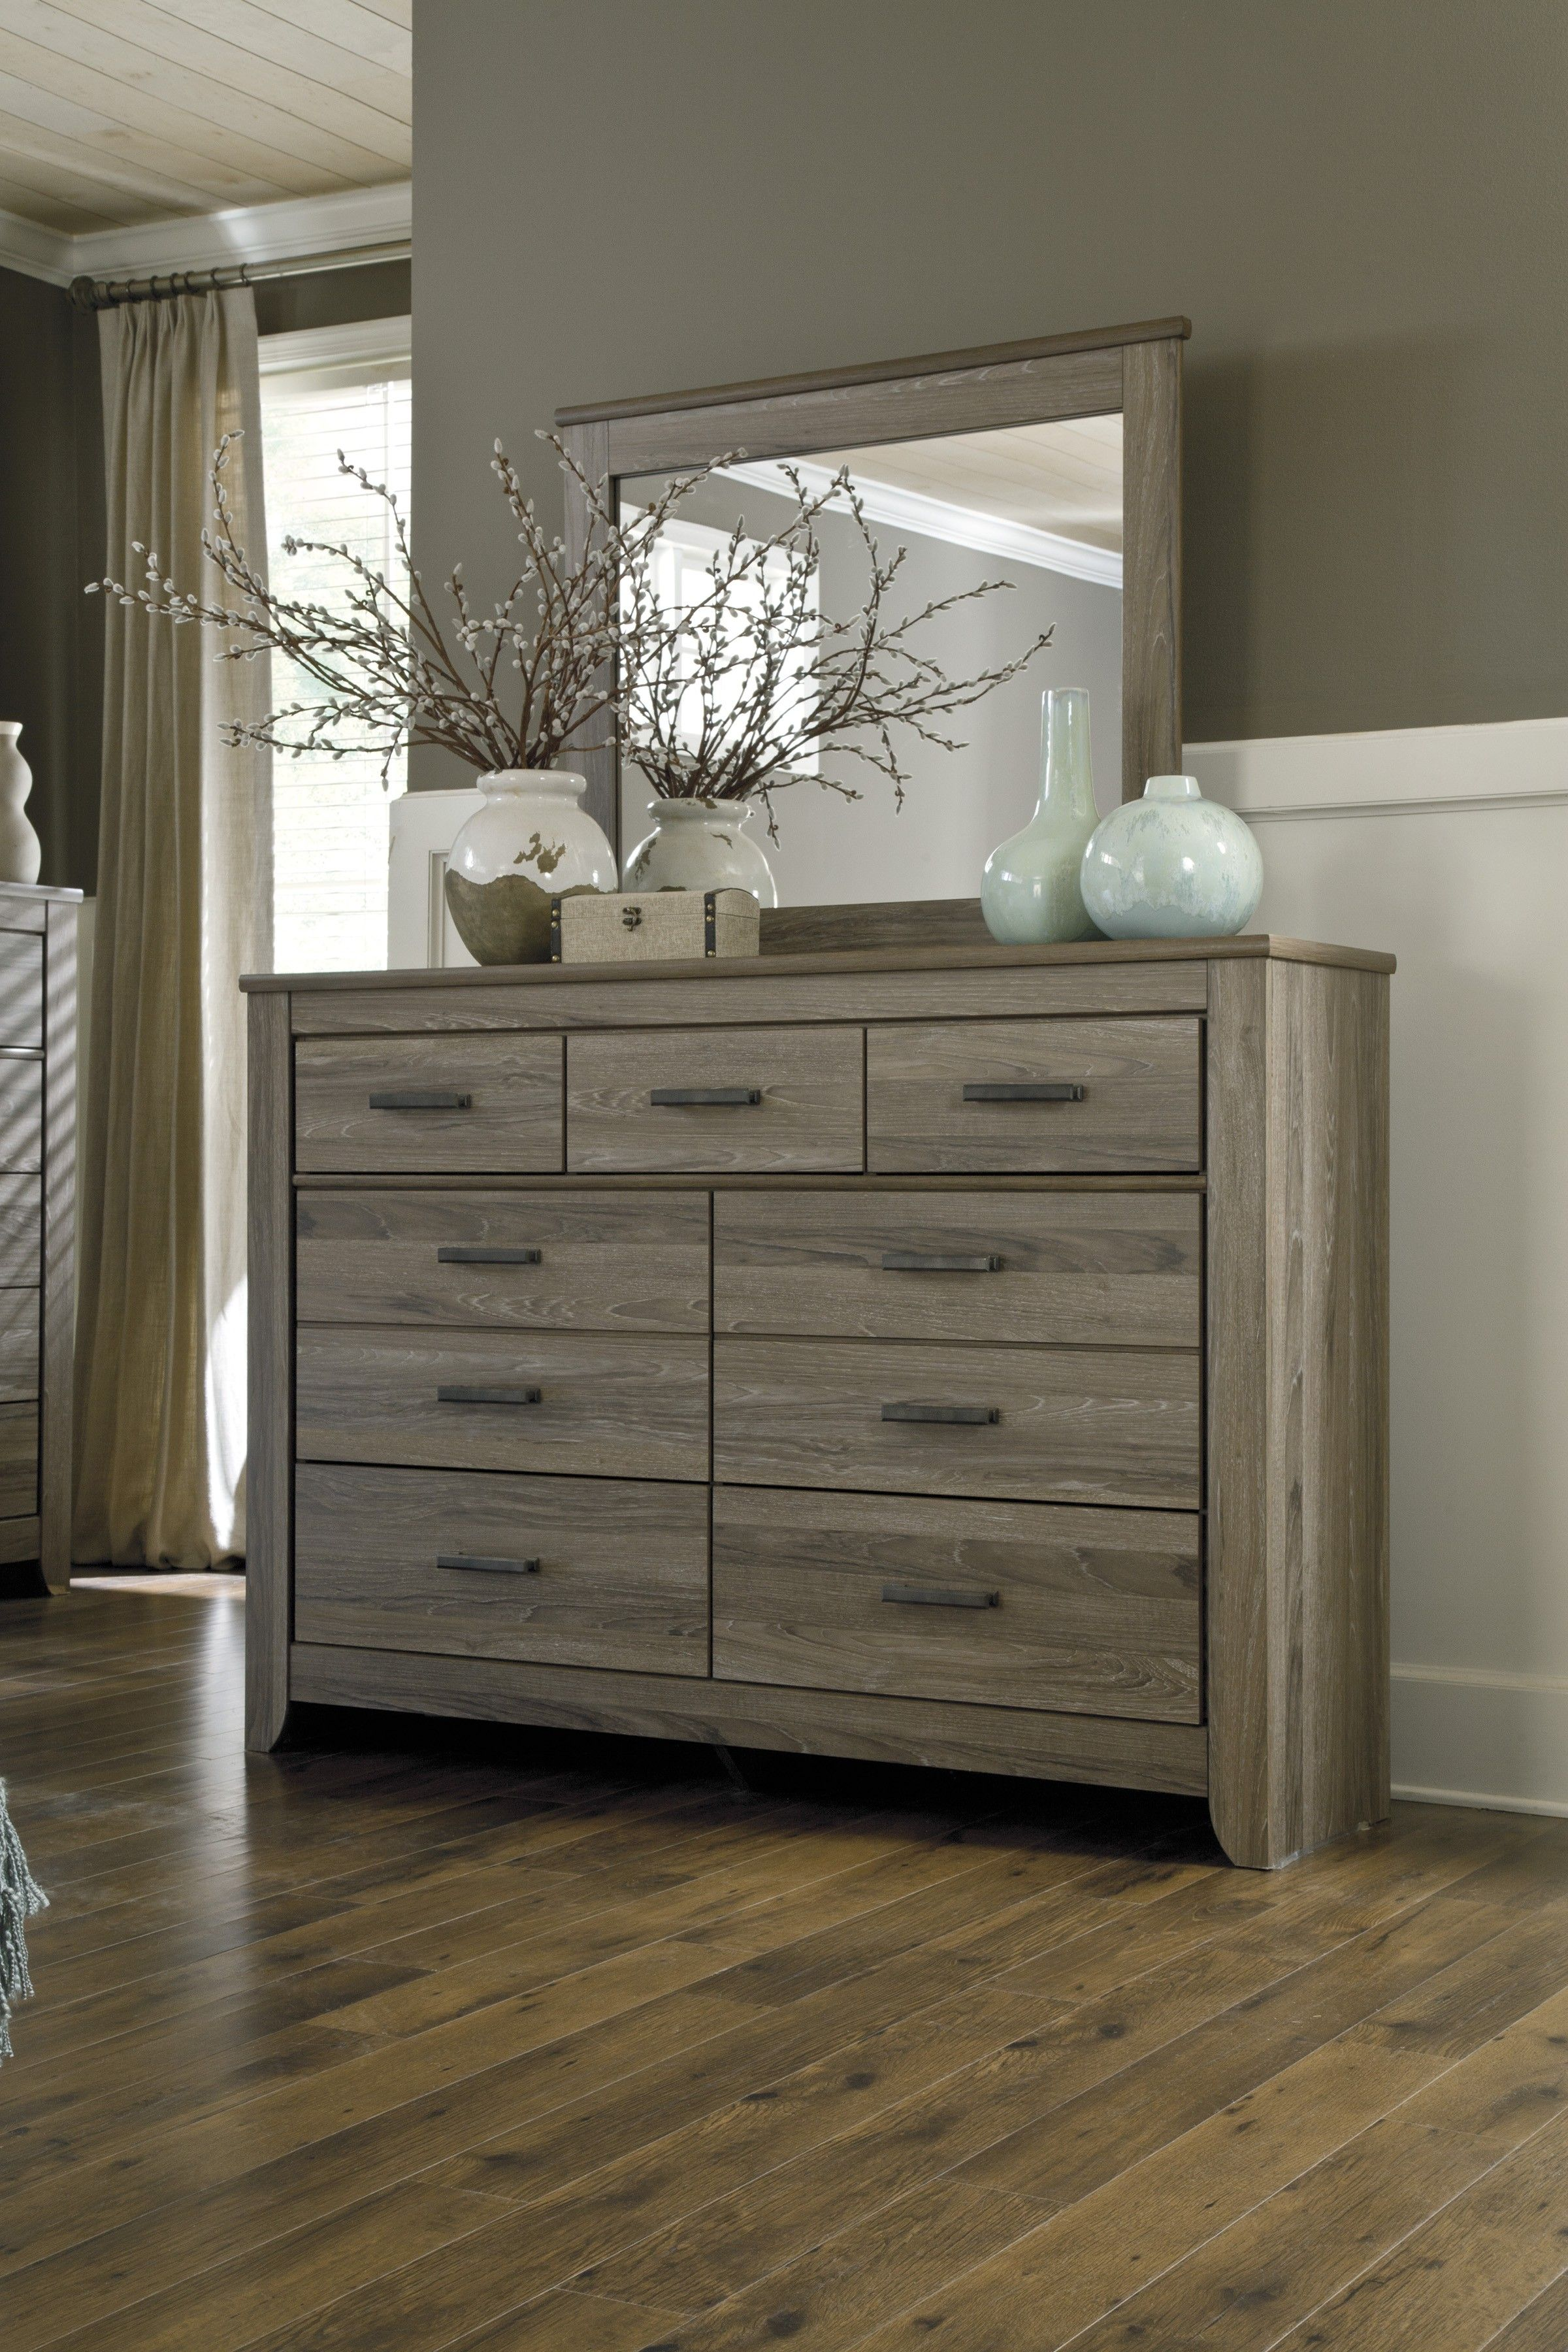 south basics door smart dresser black dressers shore kp multiple mirrored c finishes with drawer